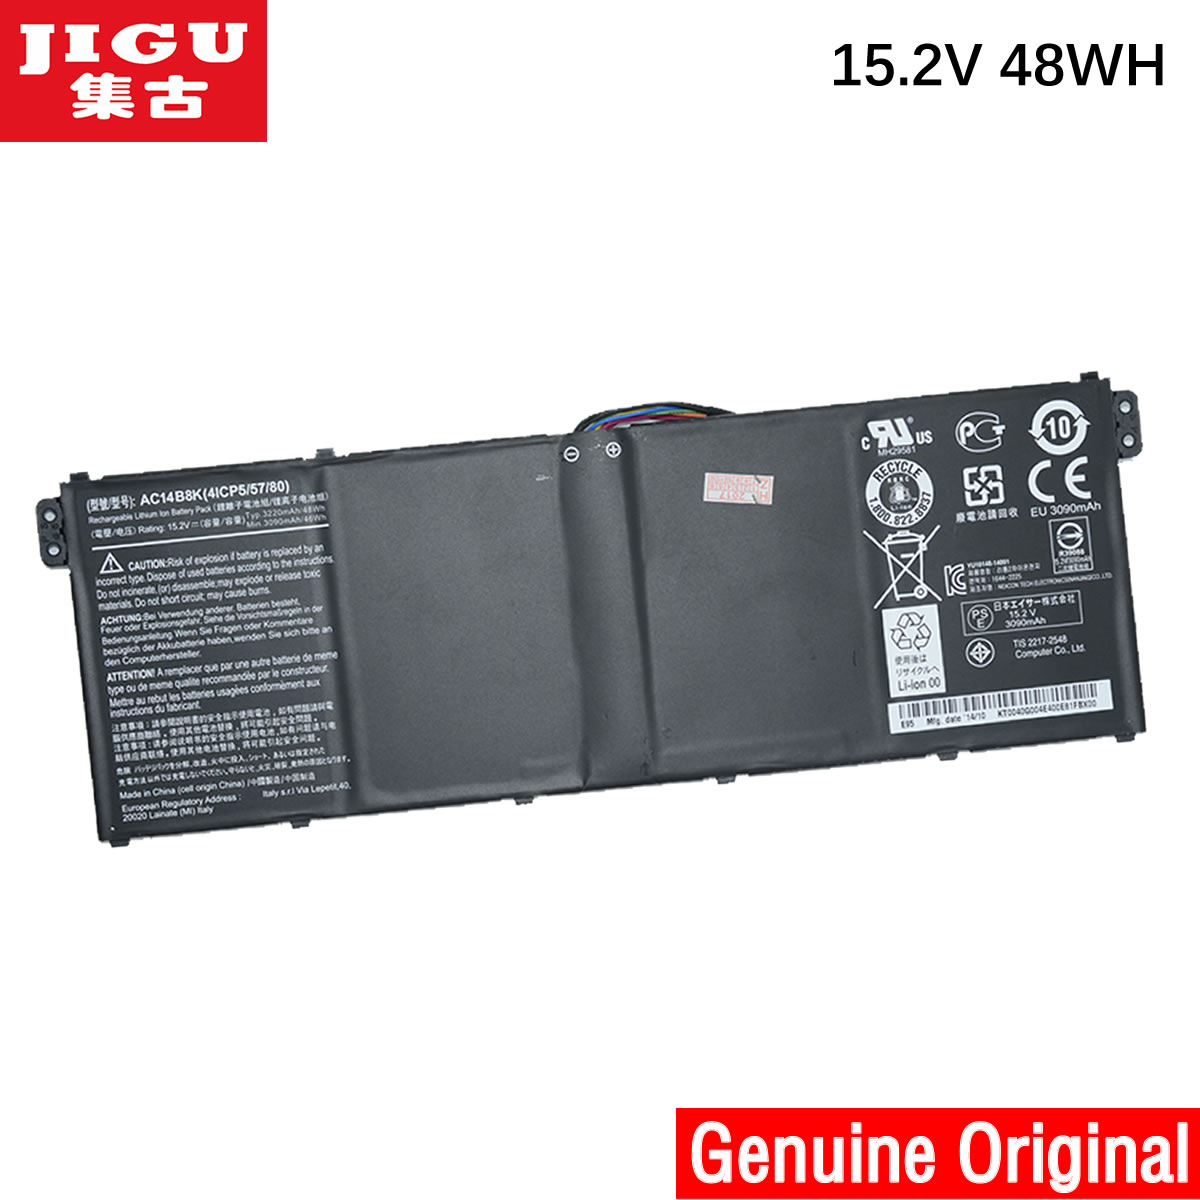 JIGU Original Laptop Battery AC14B8K FOR Acer Aspire E3-111 E3-112 CB3-111 CB5-311 ES1-511 ES1-512 E5-771G V3-111 V3-371 ES1-711 floral pattern wide brim oversized summer hat